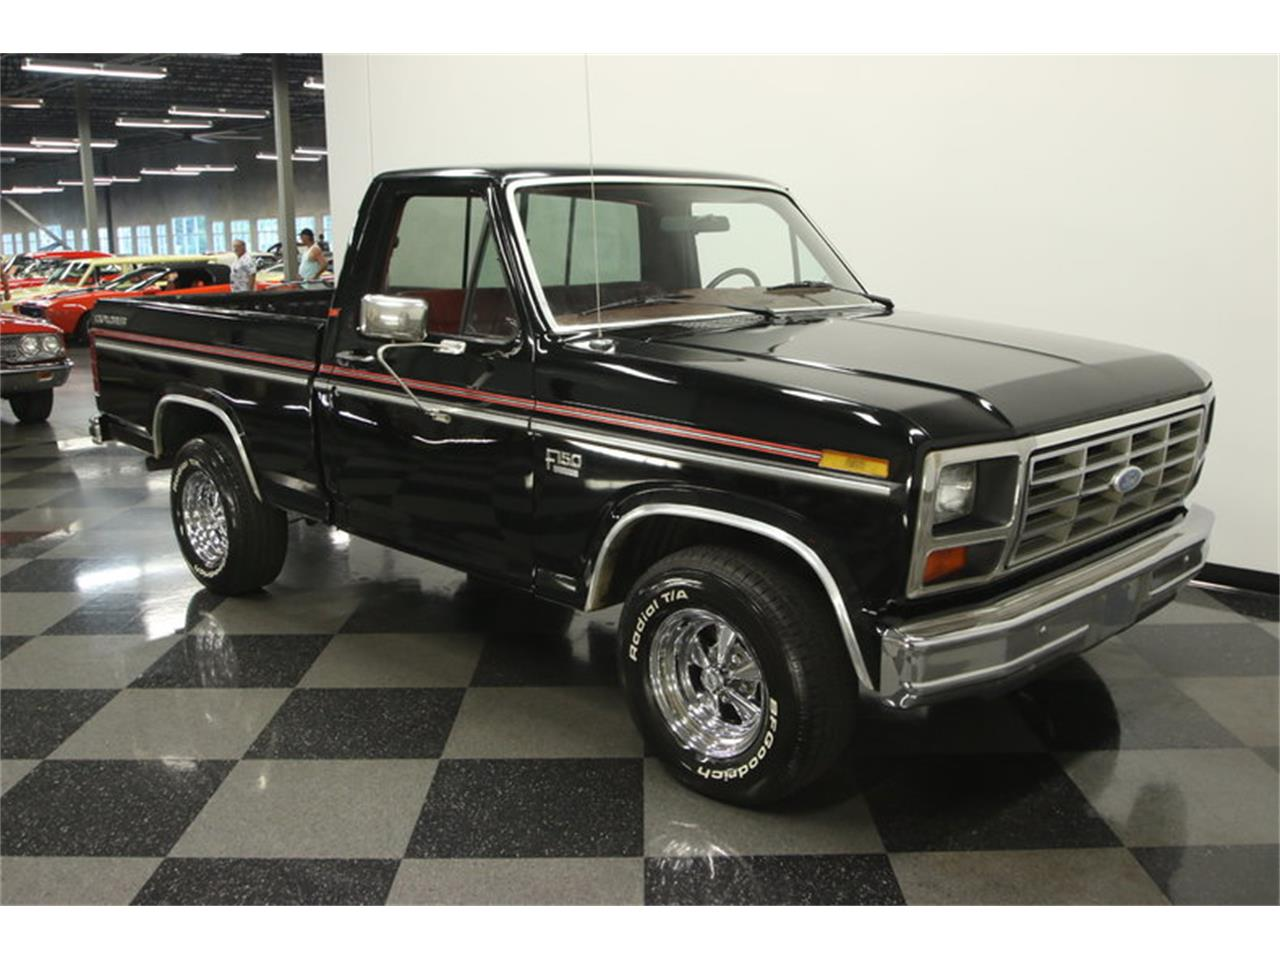 Large Picture of 1985 Ford F-150 XLT Lariat Explorer located in Lutz Florida - LFBW